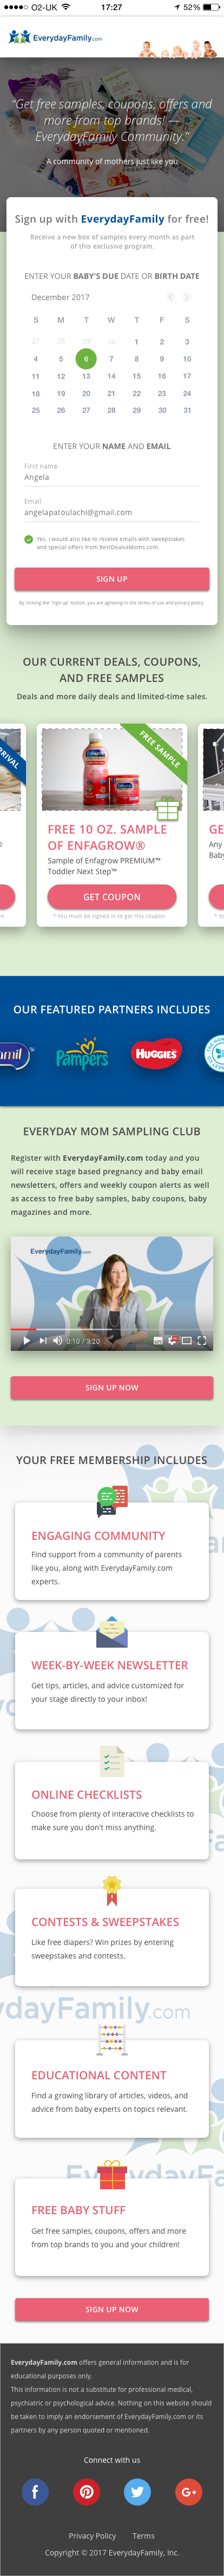 Create a new lead generation landing page for EverydayFamily.com